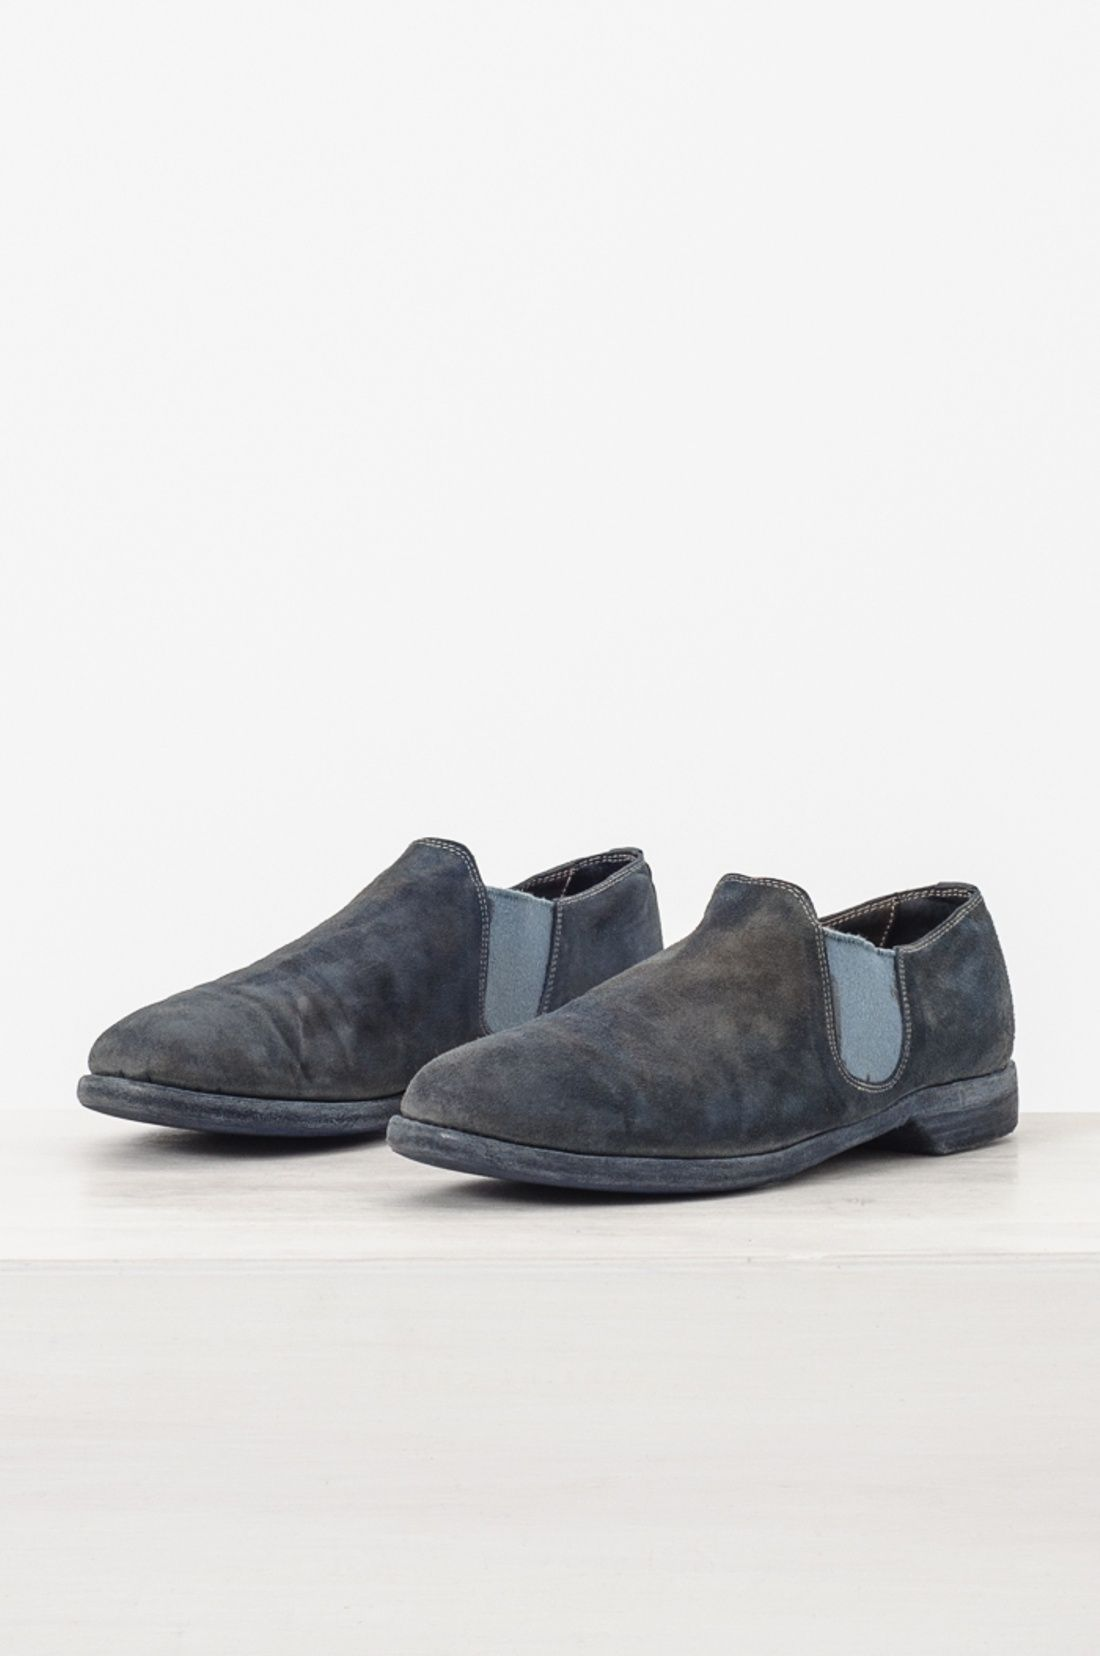 Guidi 109 Reverse Leather Slip On Shoe, Sz. 42 Size 9 $338 - Grailed